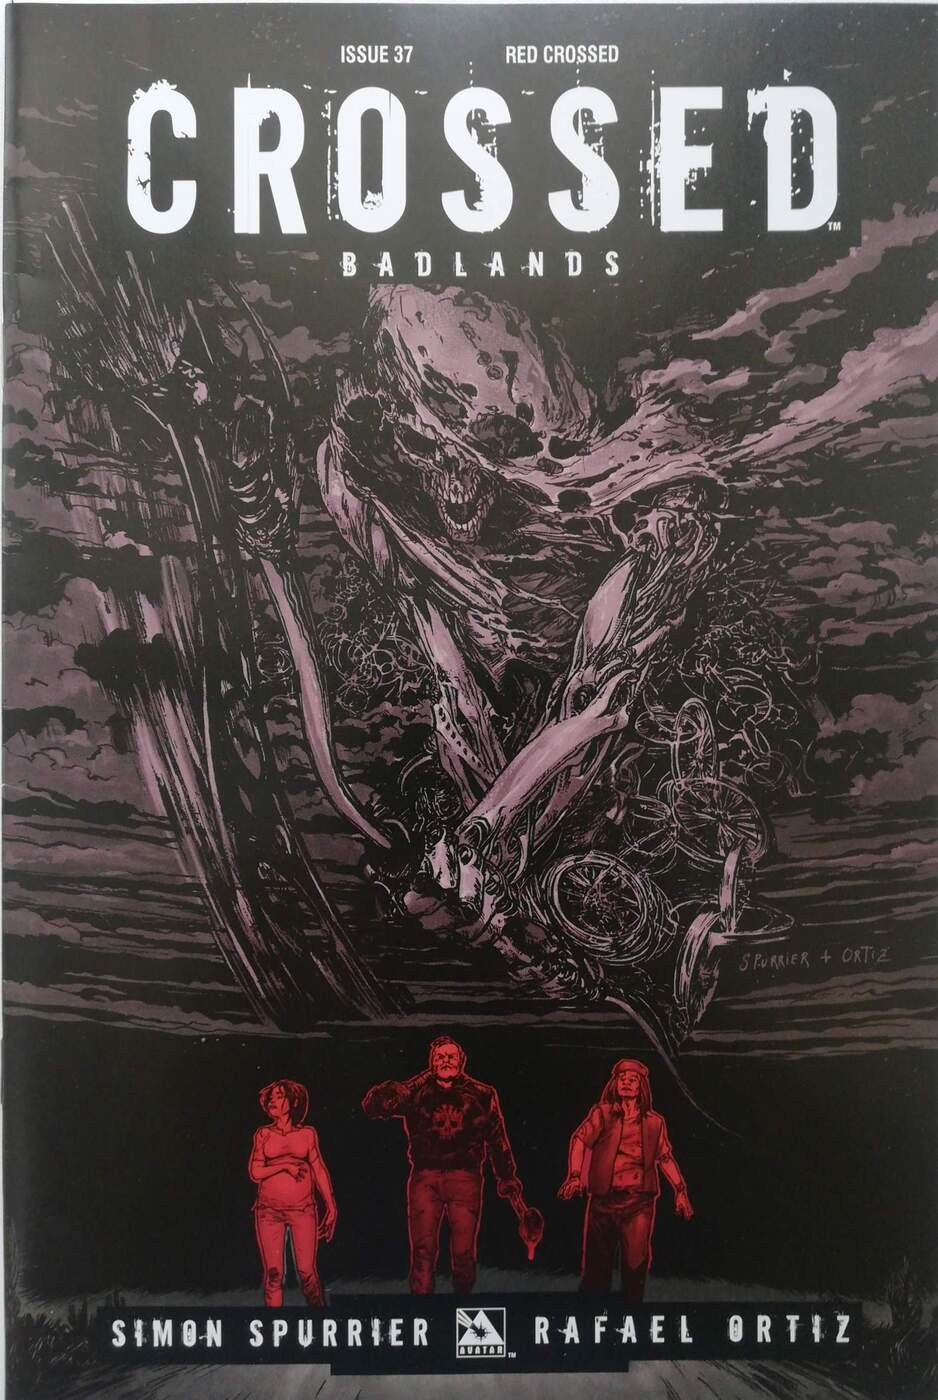 Crossed: Badlands. №37 (red crossed) (4 книги) NEW STORY ARC! Fan favorite Crossed writer, SIMON SPURRIER, delivers...